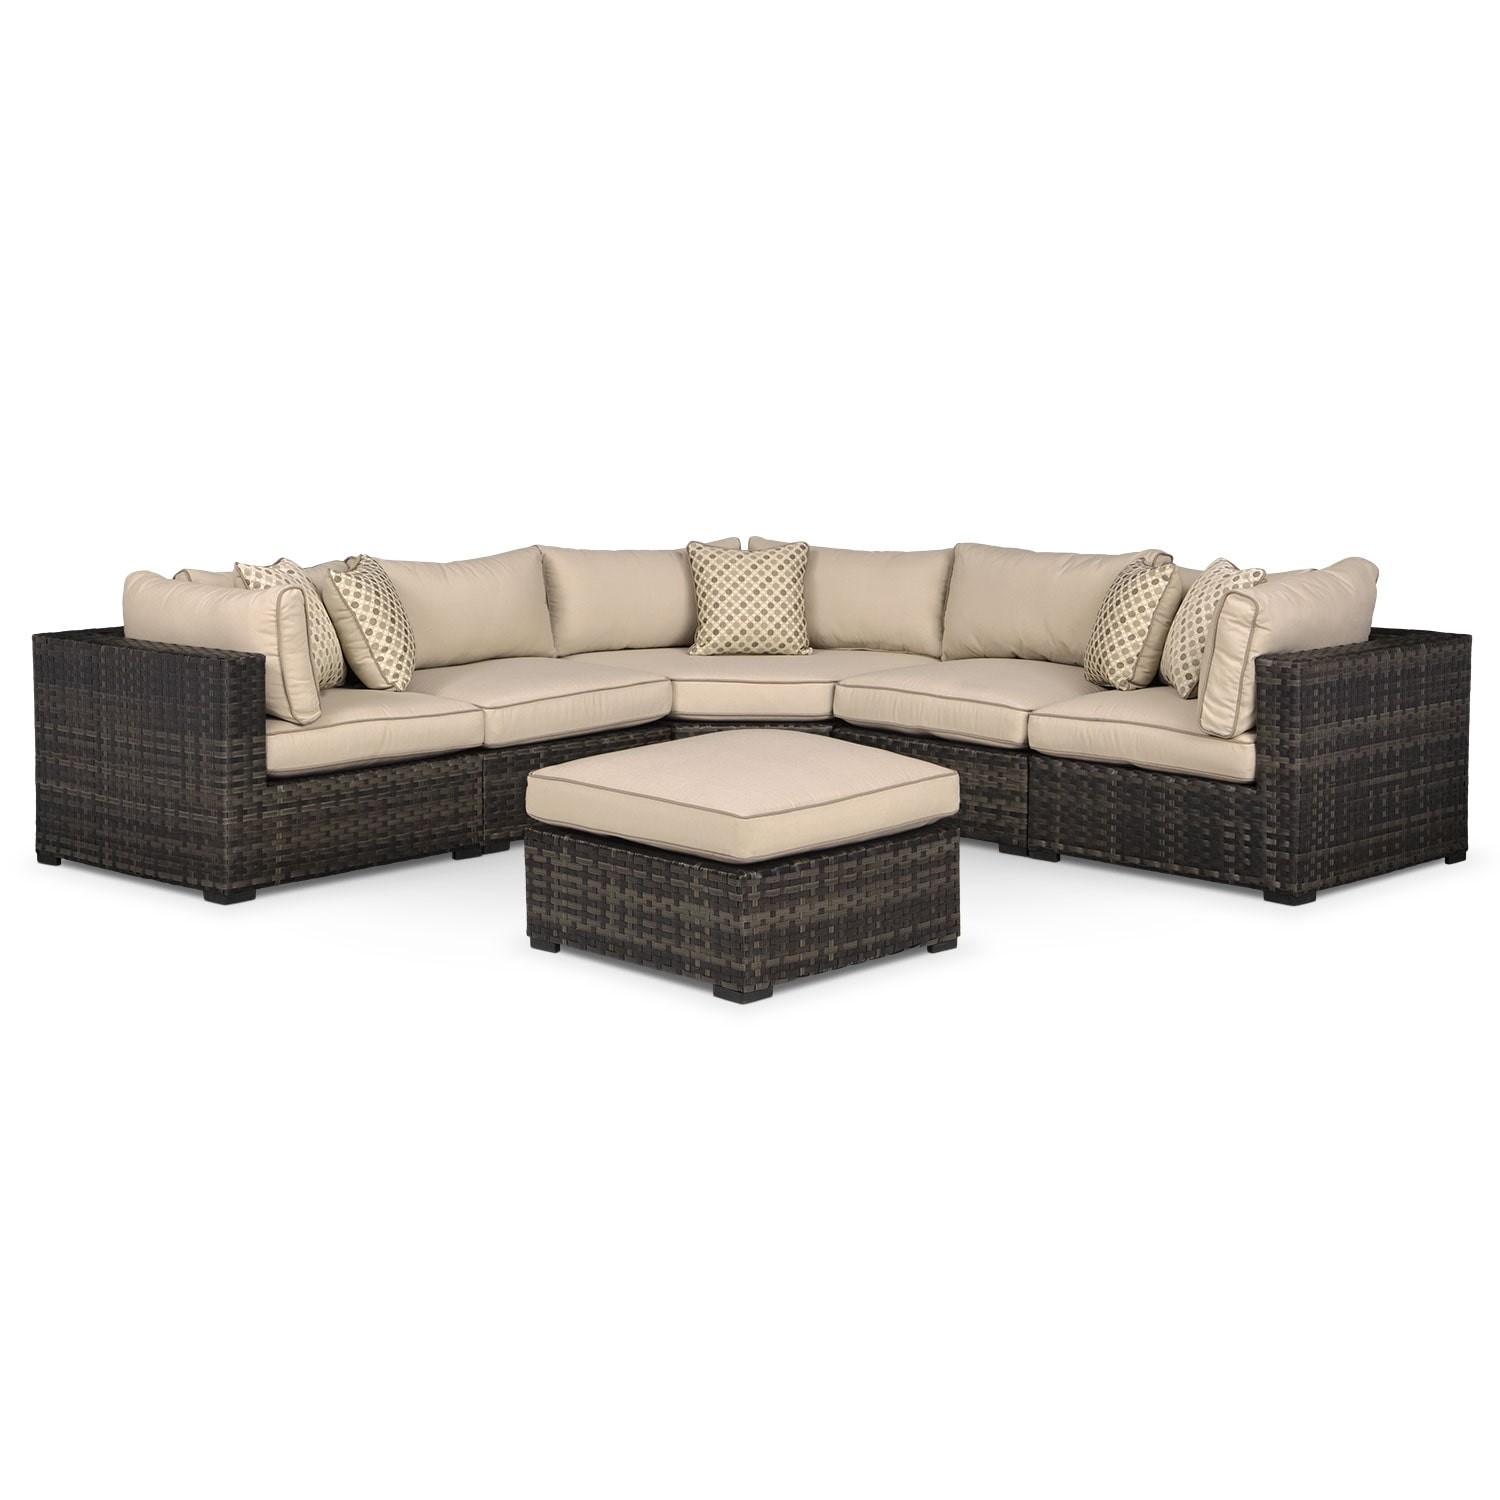 Regatta 5 Pc. Outdoor Sectional w/ Wedge and Ottoman